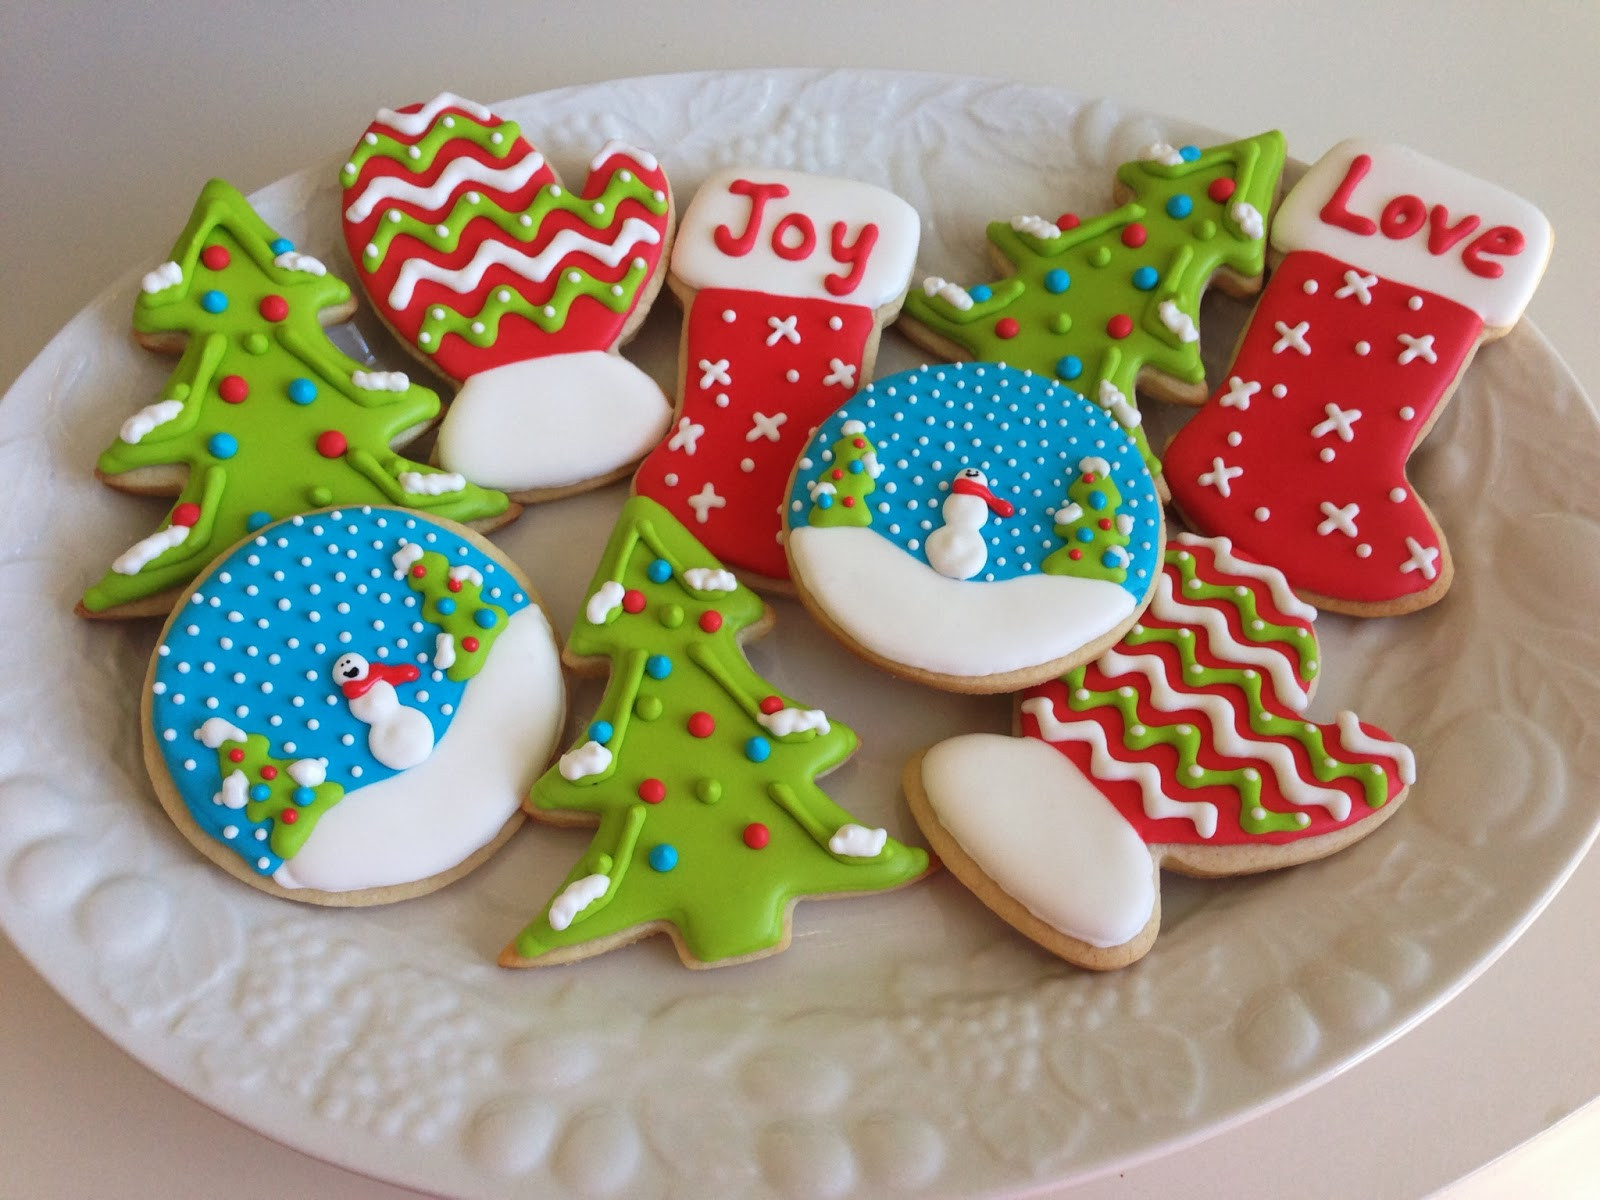 Christmas Sugar Cookie Icing Recipes  monograms & cake Christmas Cut Out Sugar Cookies with